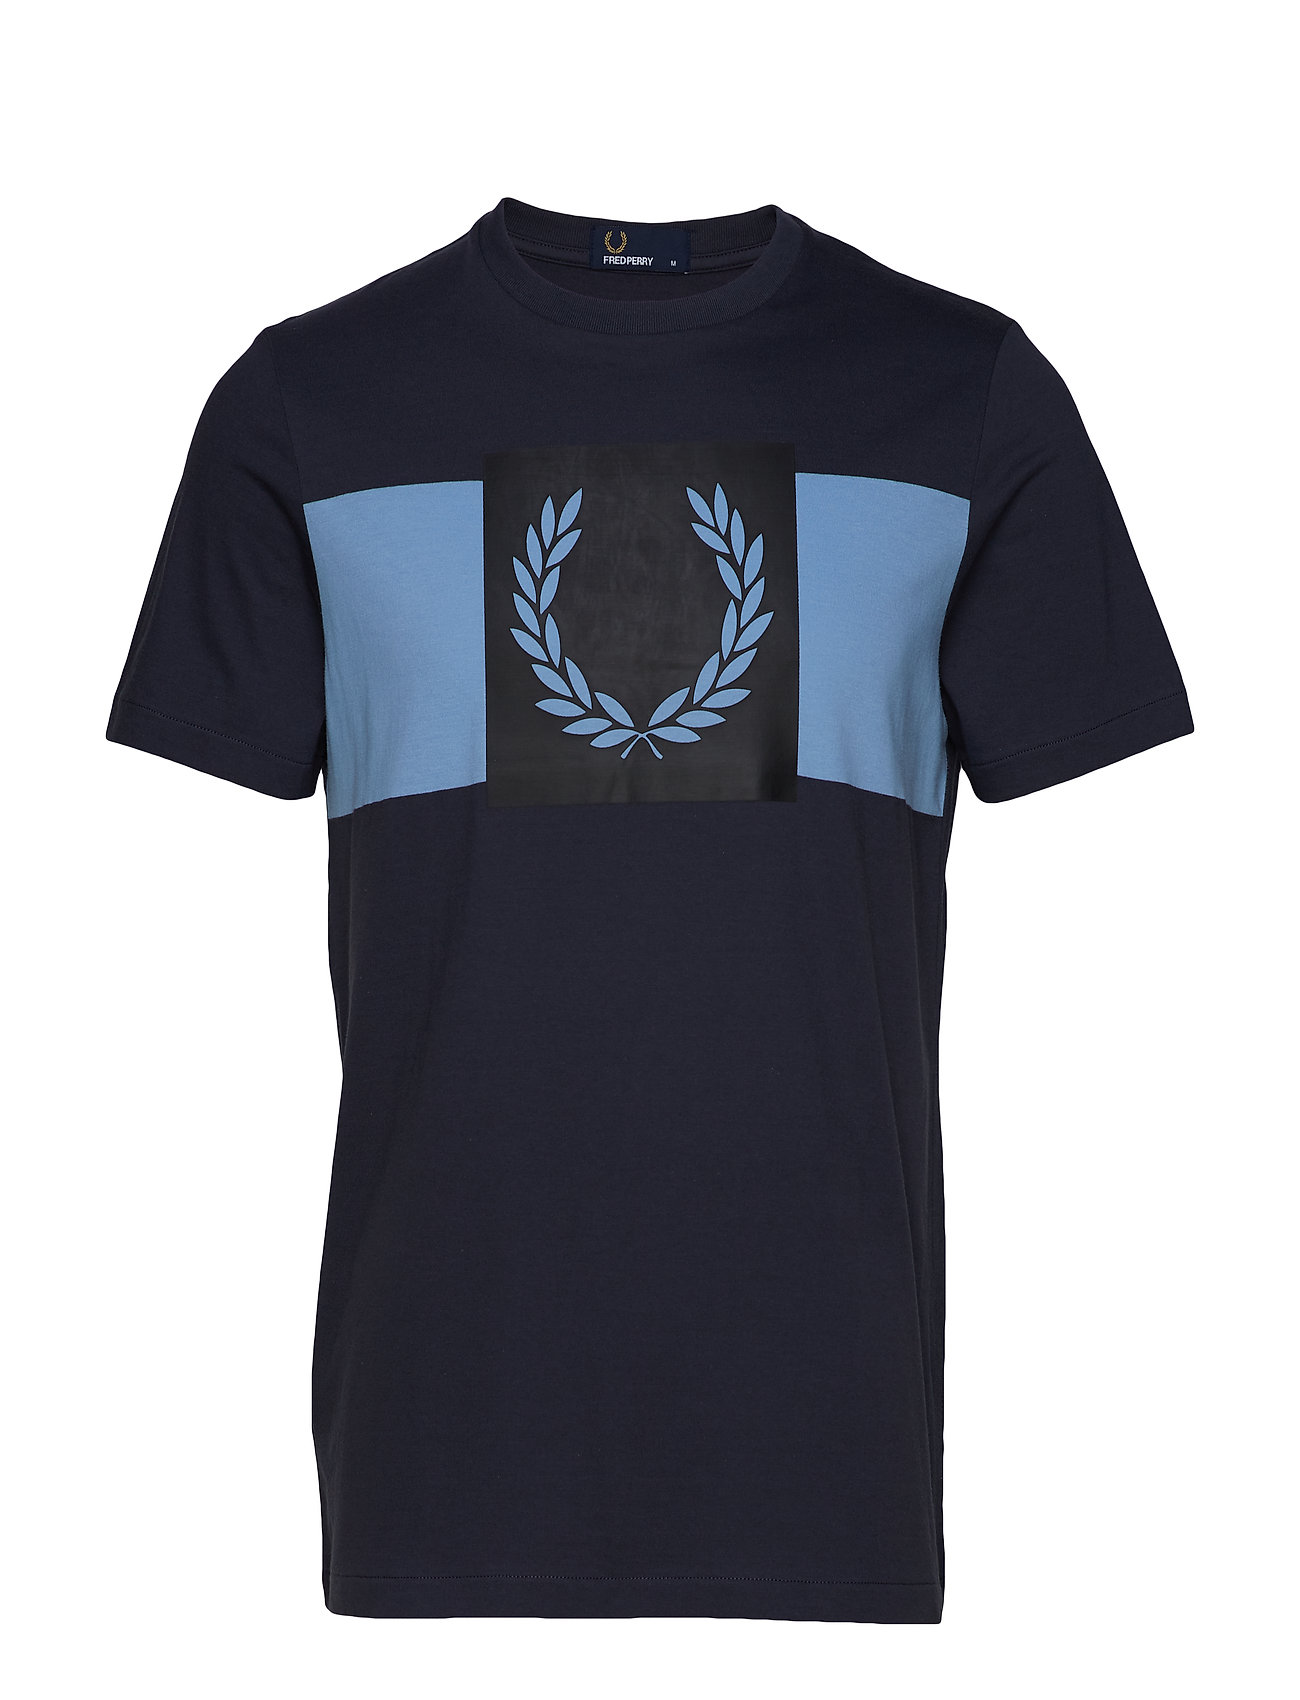 Fred Perry LAUREL WREATH T-SHIRT - GRAPHITE